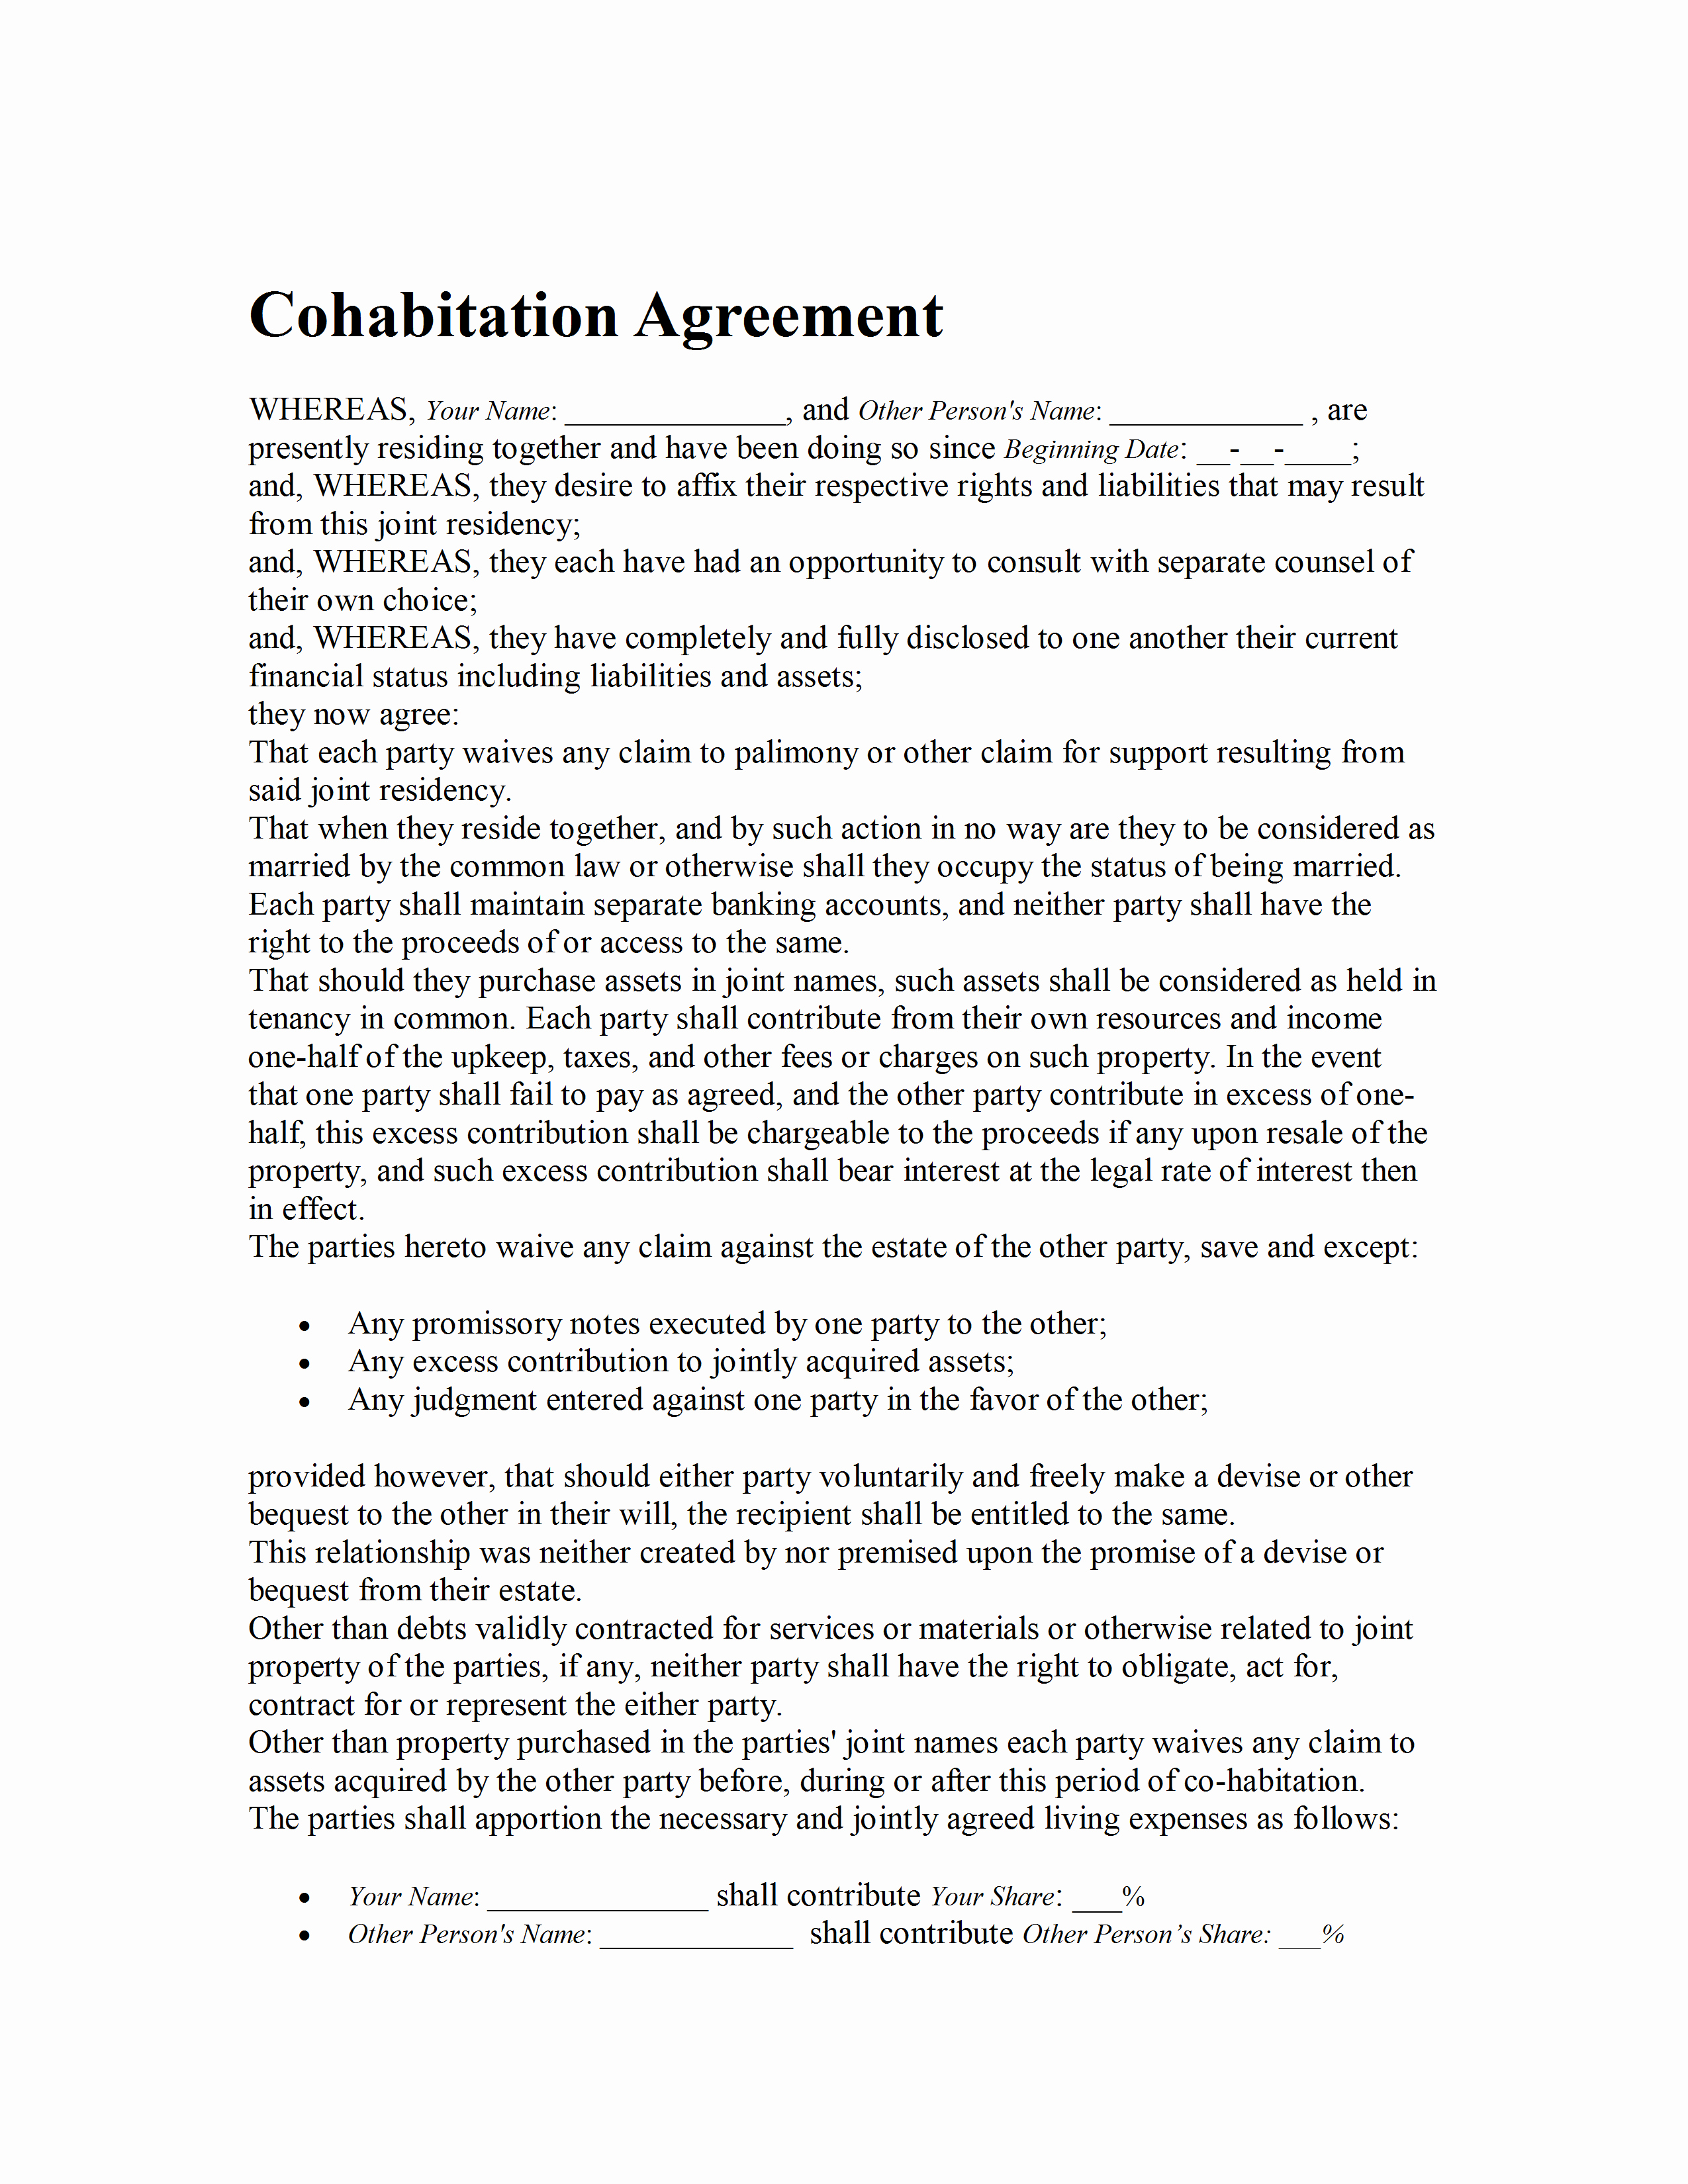 Living Agreement Contract Template Inspirational Sample Cohabitation Agreement 100 Nanny Contract Template